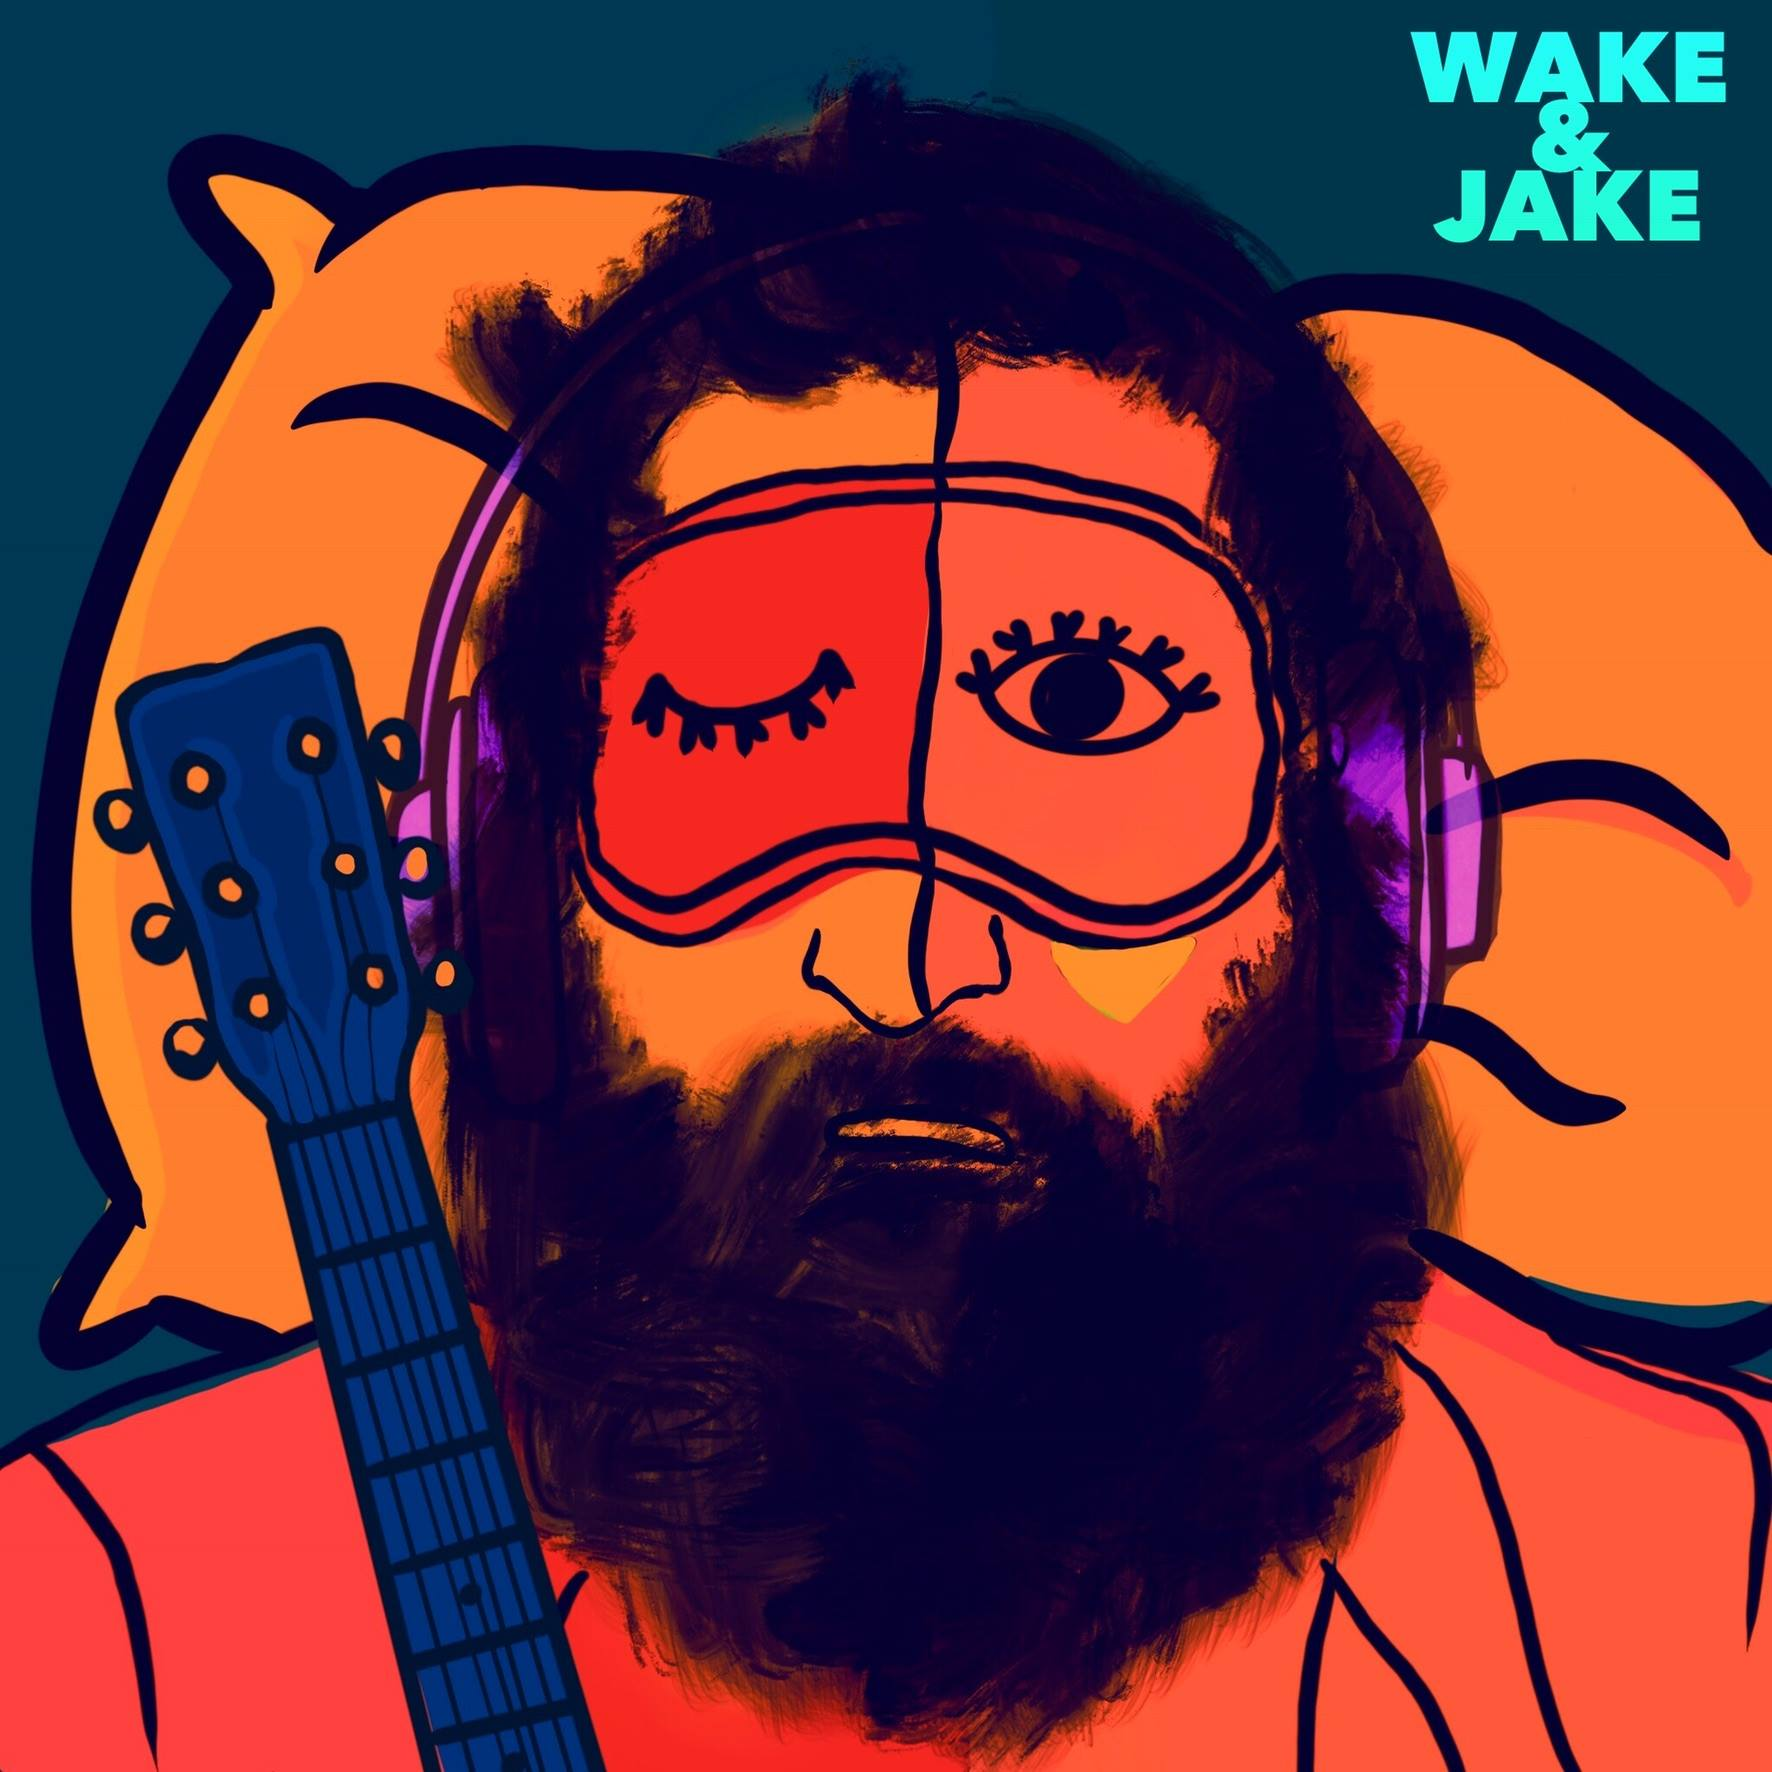 Wake & Jake  is for people seeking a new Monday morning ritual. Wake up with Jake as he improvises some soothing music, and gets your week started right.